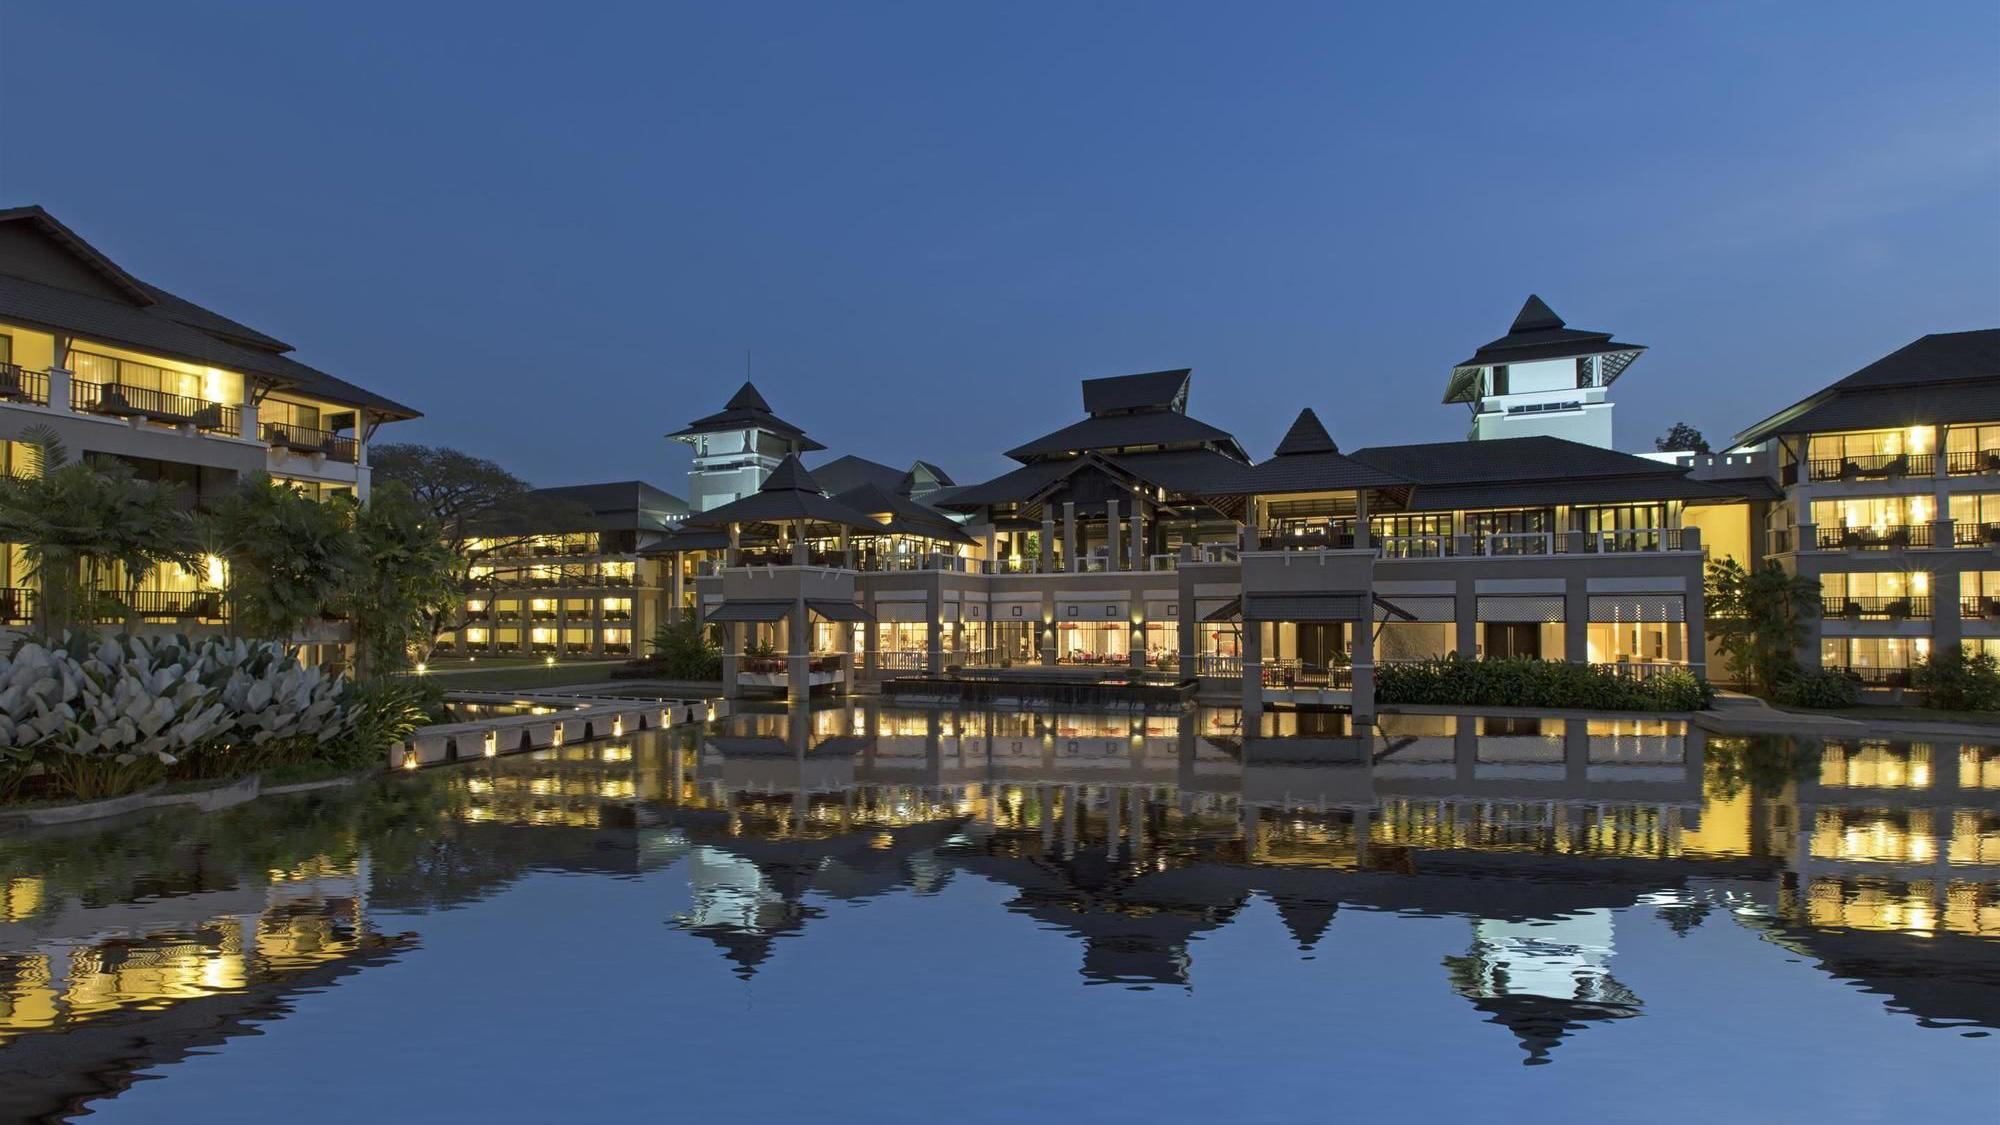 Exterior and pond  at Le Meridein hotel in Chiang Rai, Thailand